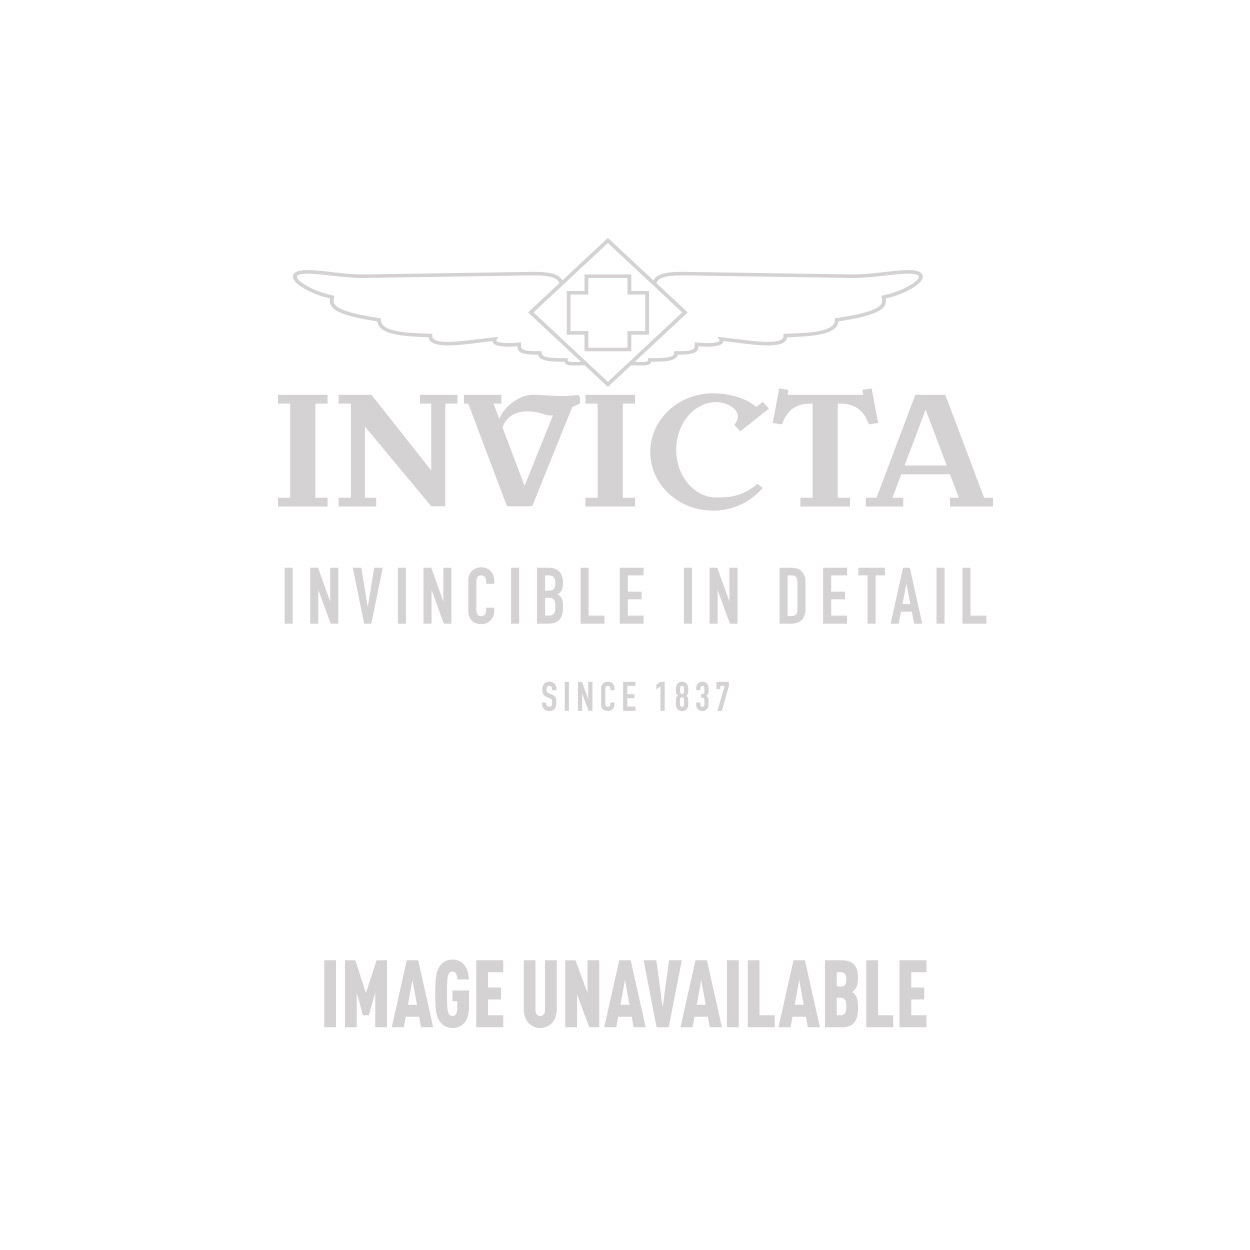 Invicta Coalition Forces Swiss Made Quartz Watch - Gold, Stainless Steel case Stainless Steel band - Model 90030